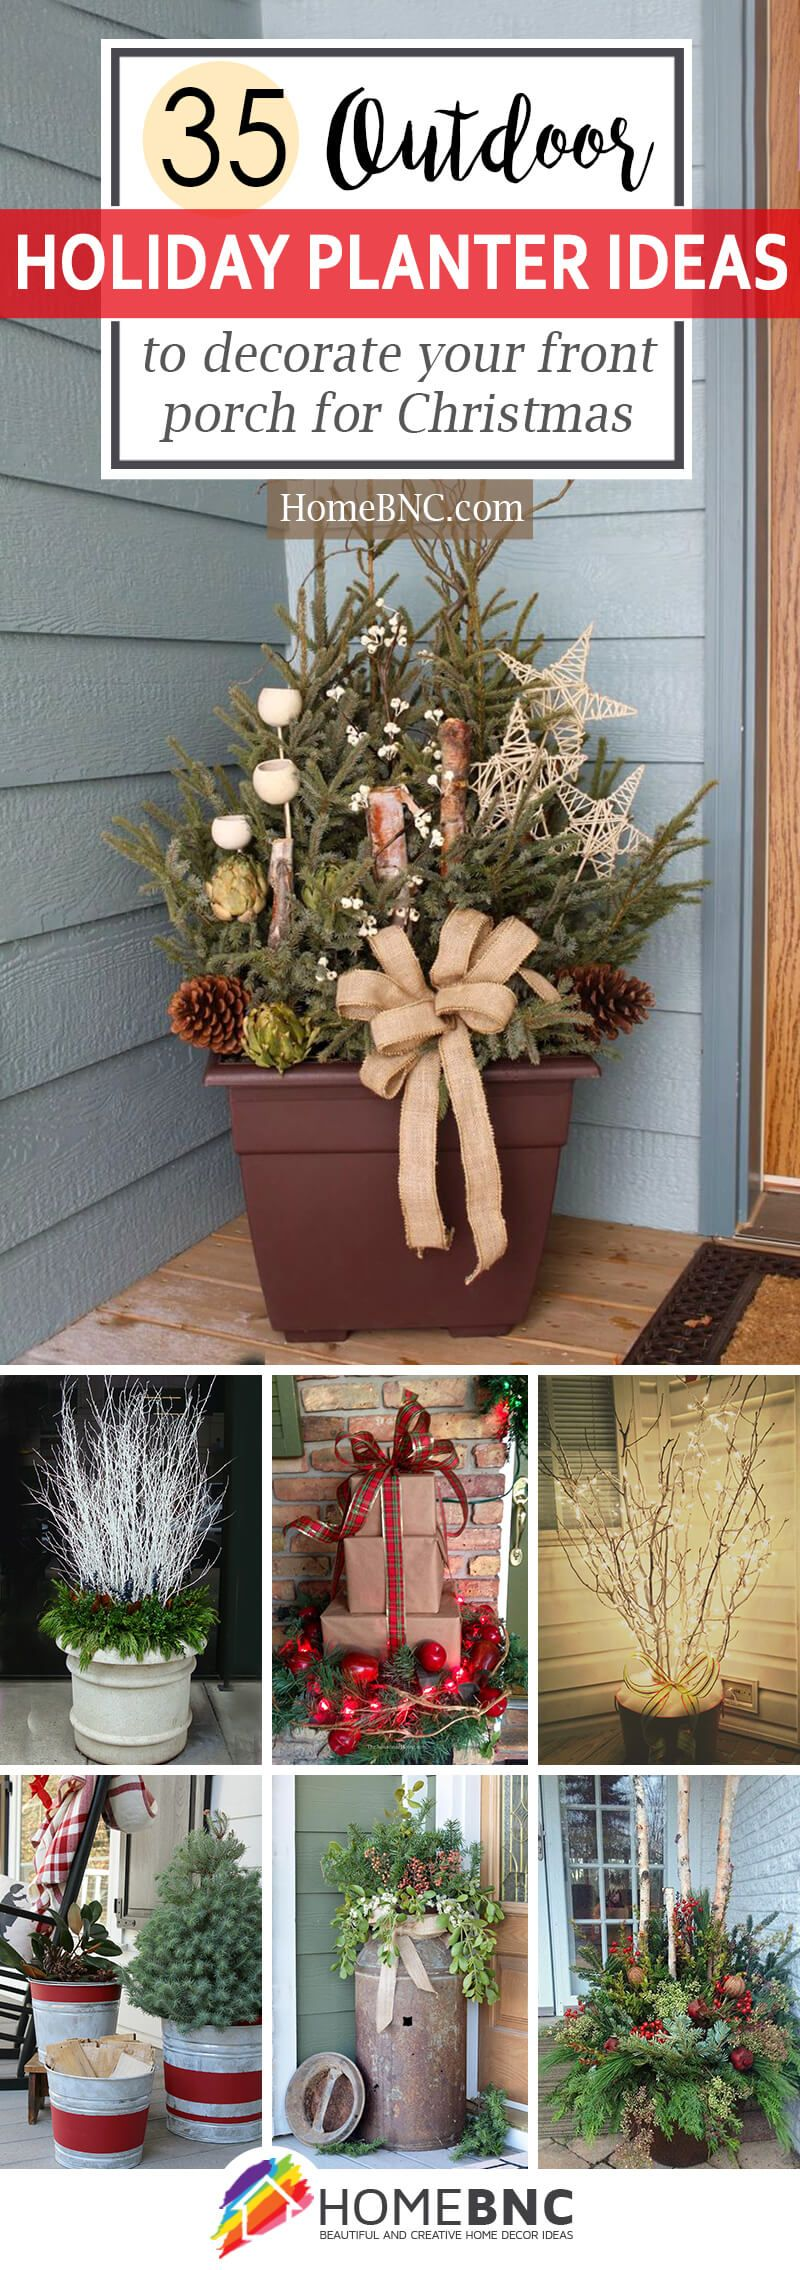 festive outdoor holiday planter ideas to decorate your front